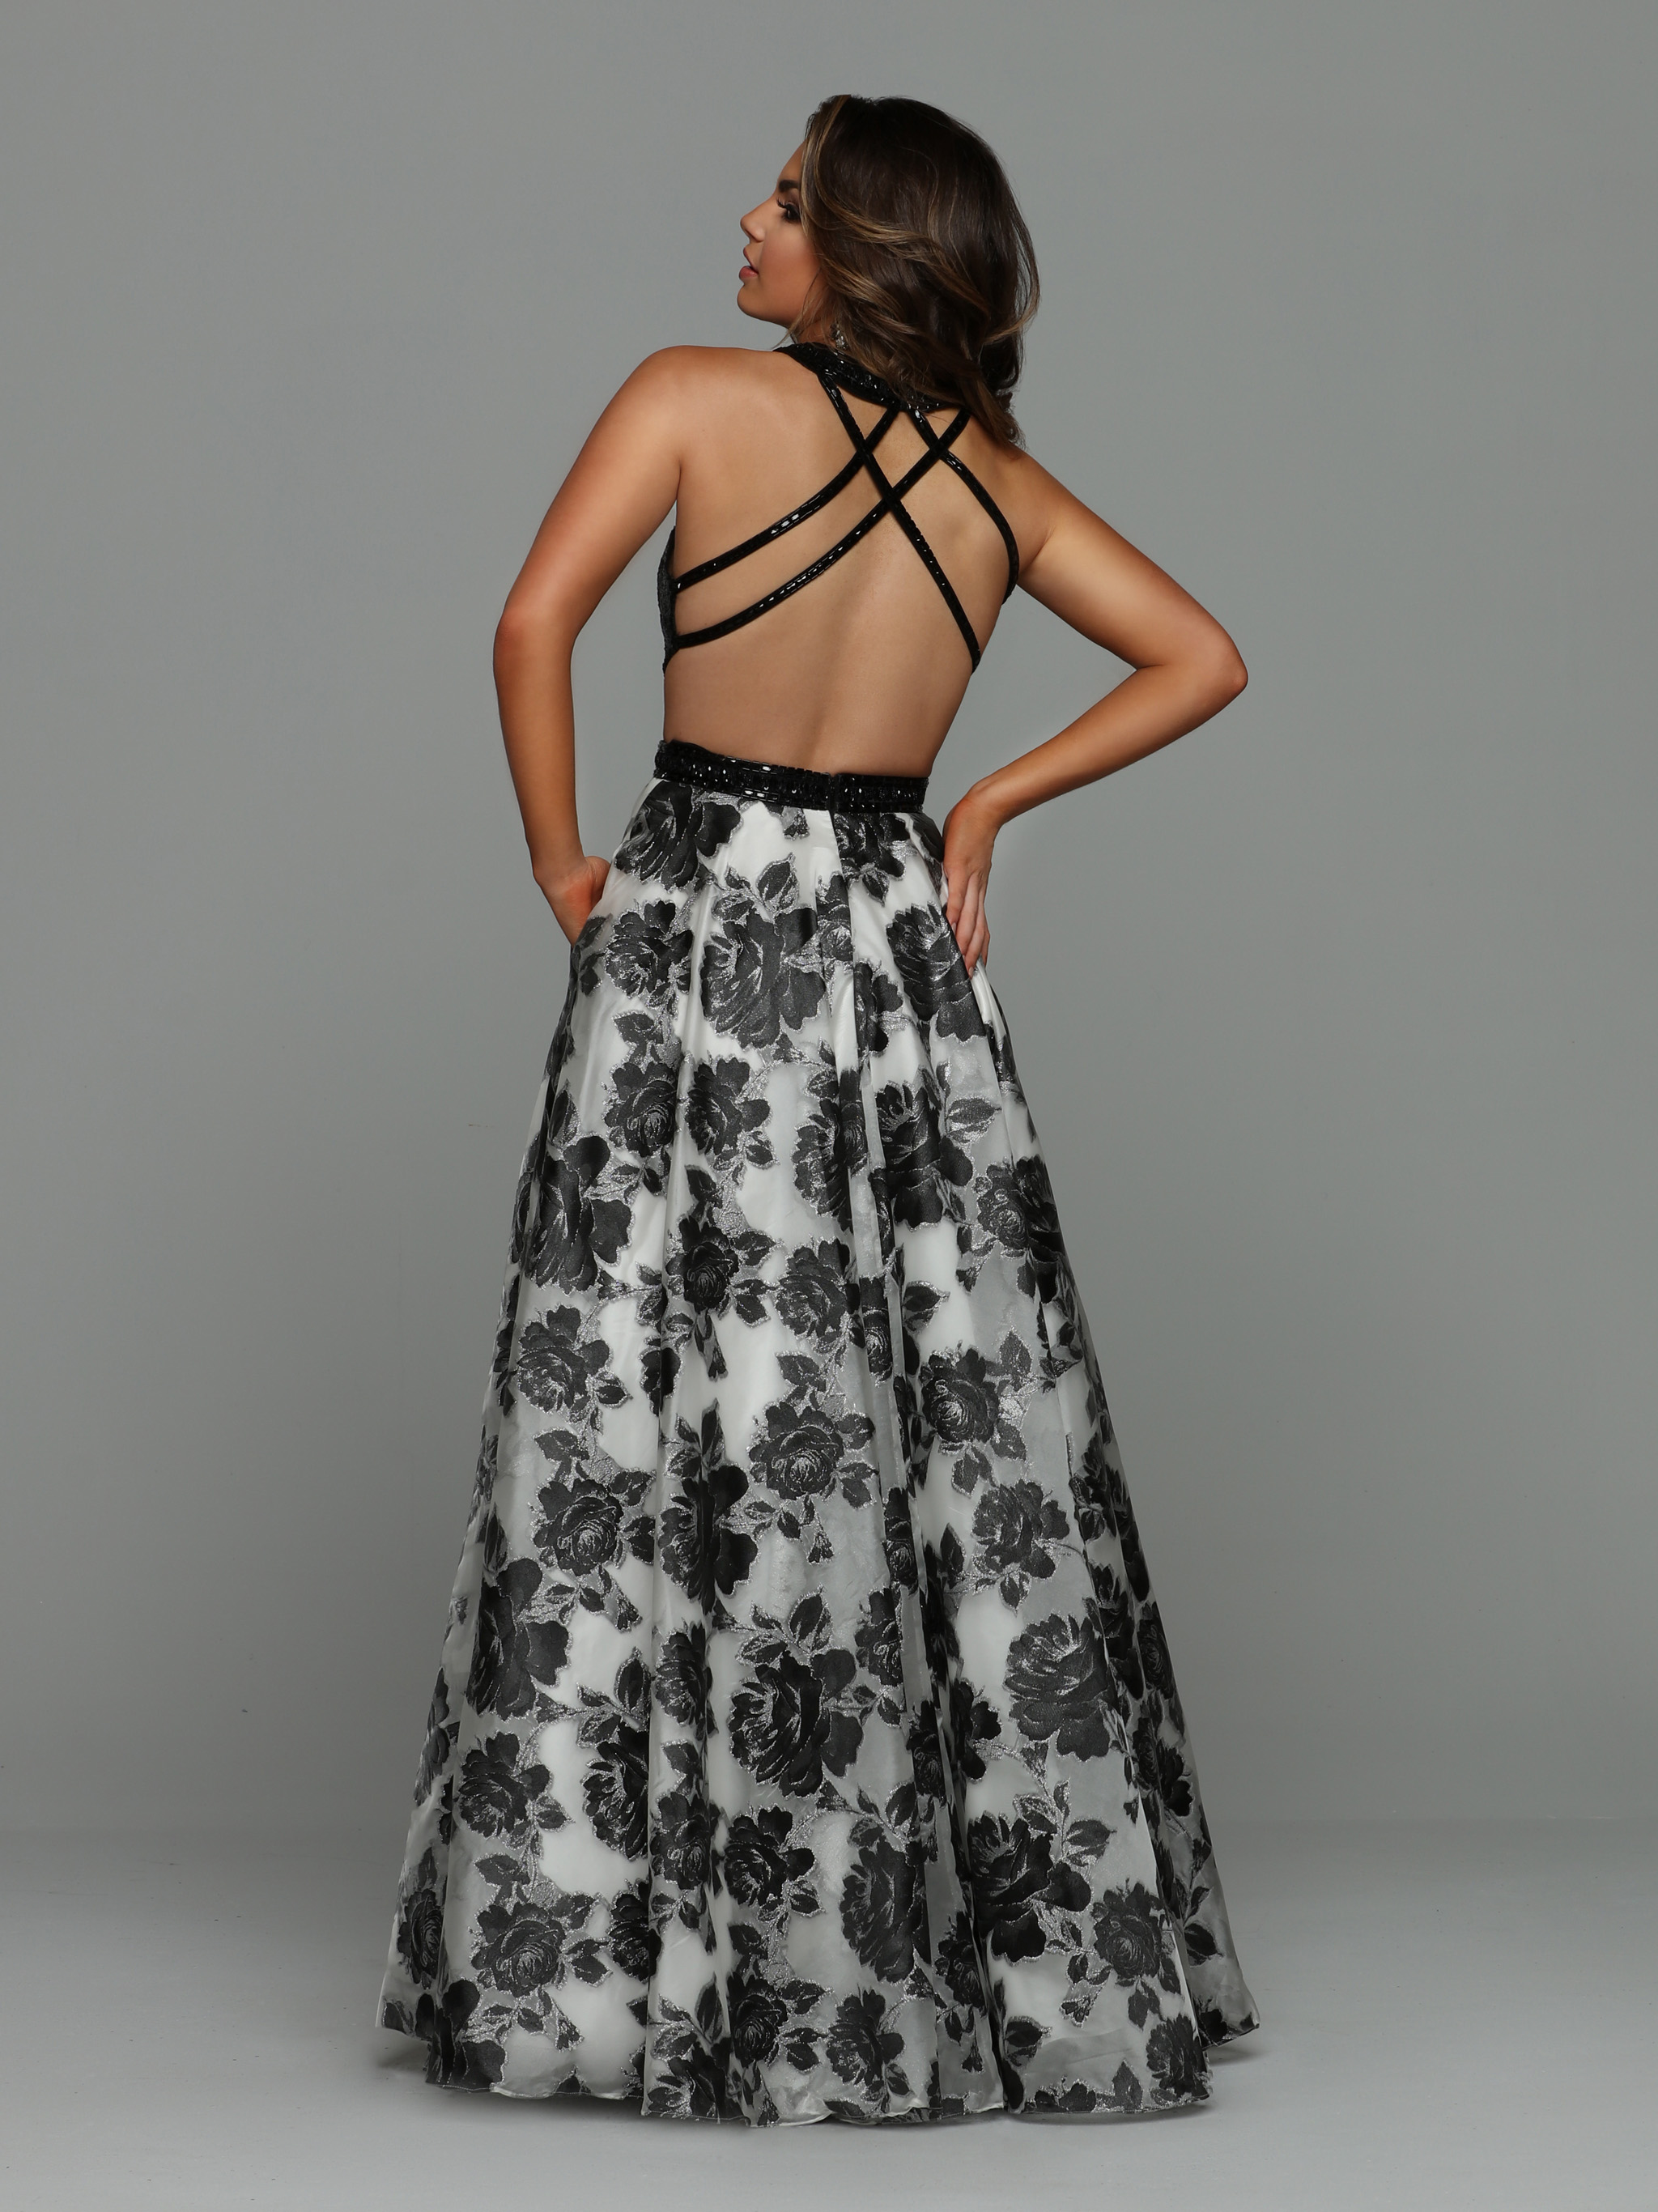 Image showing back view of style #71928